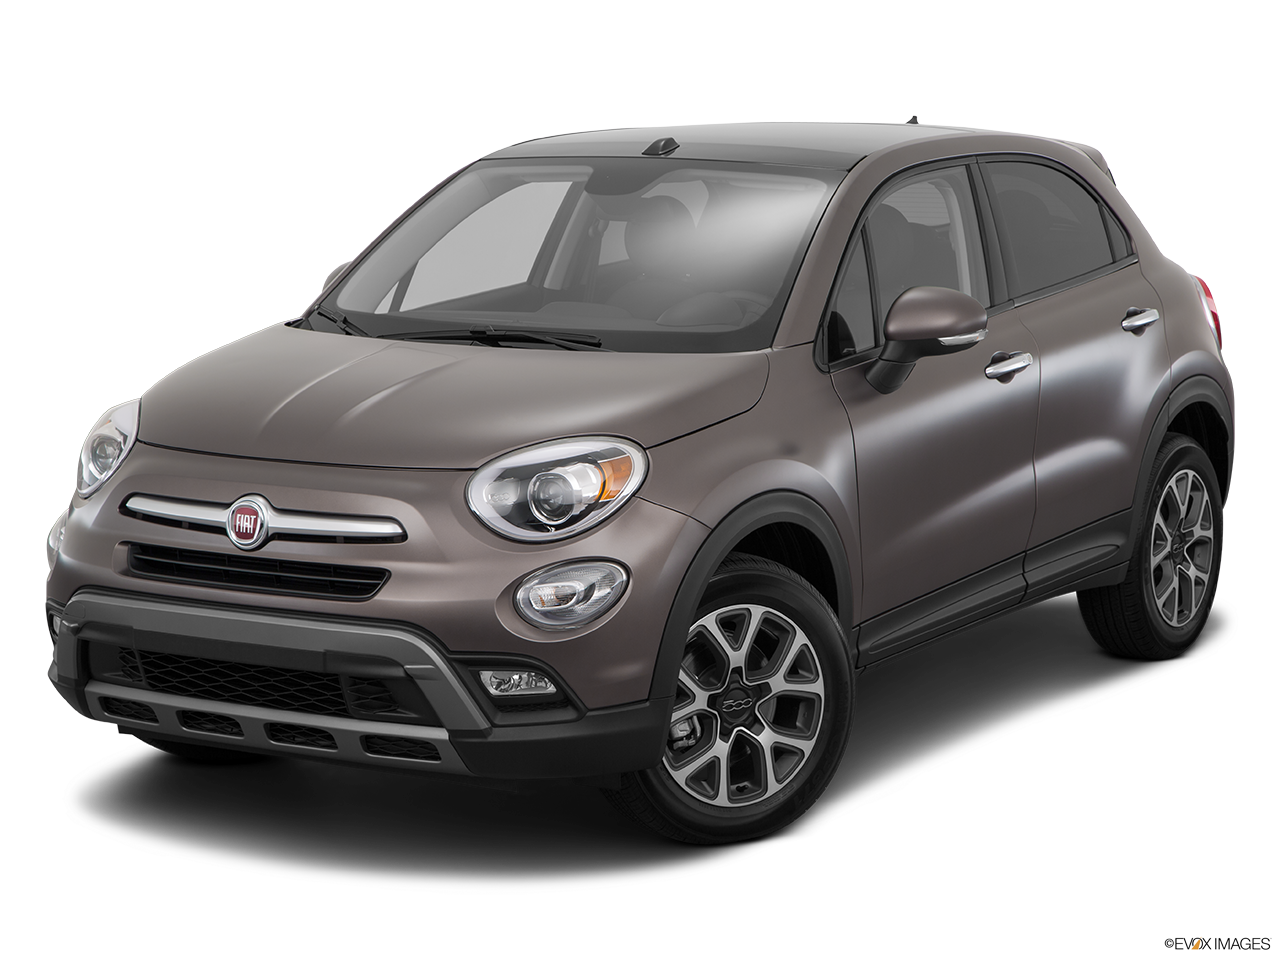 2016 Fiat 500x Dealer In Birmingham Fiat Of Birmingham